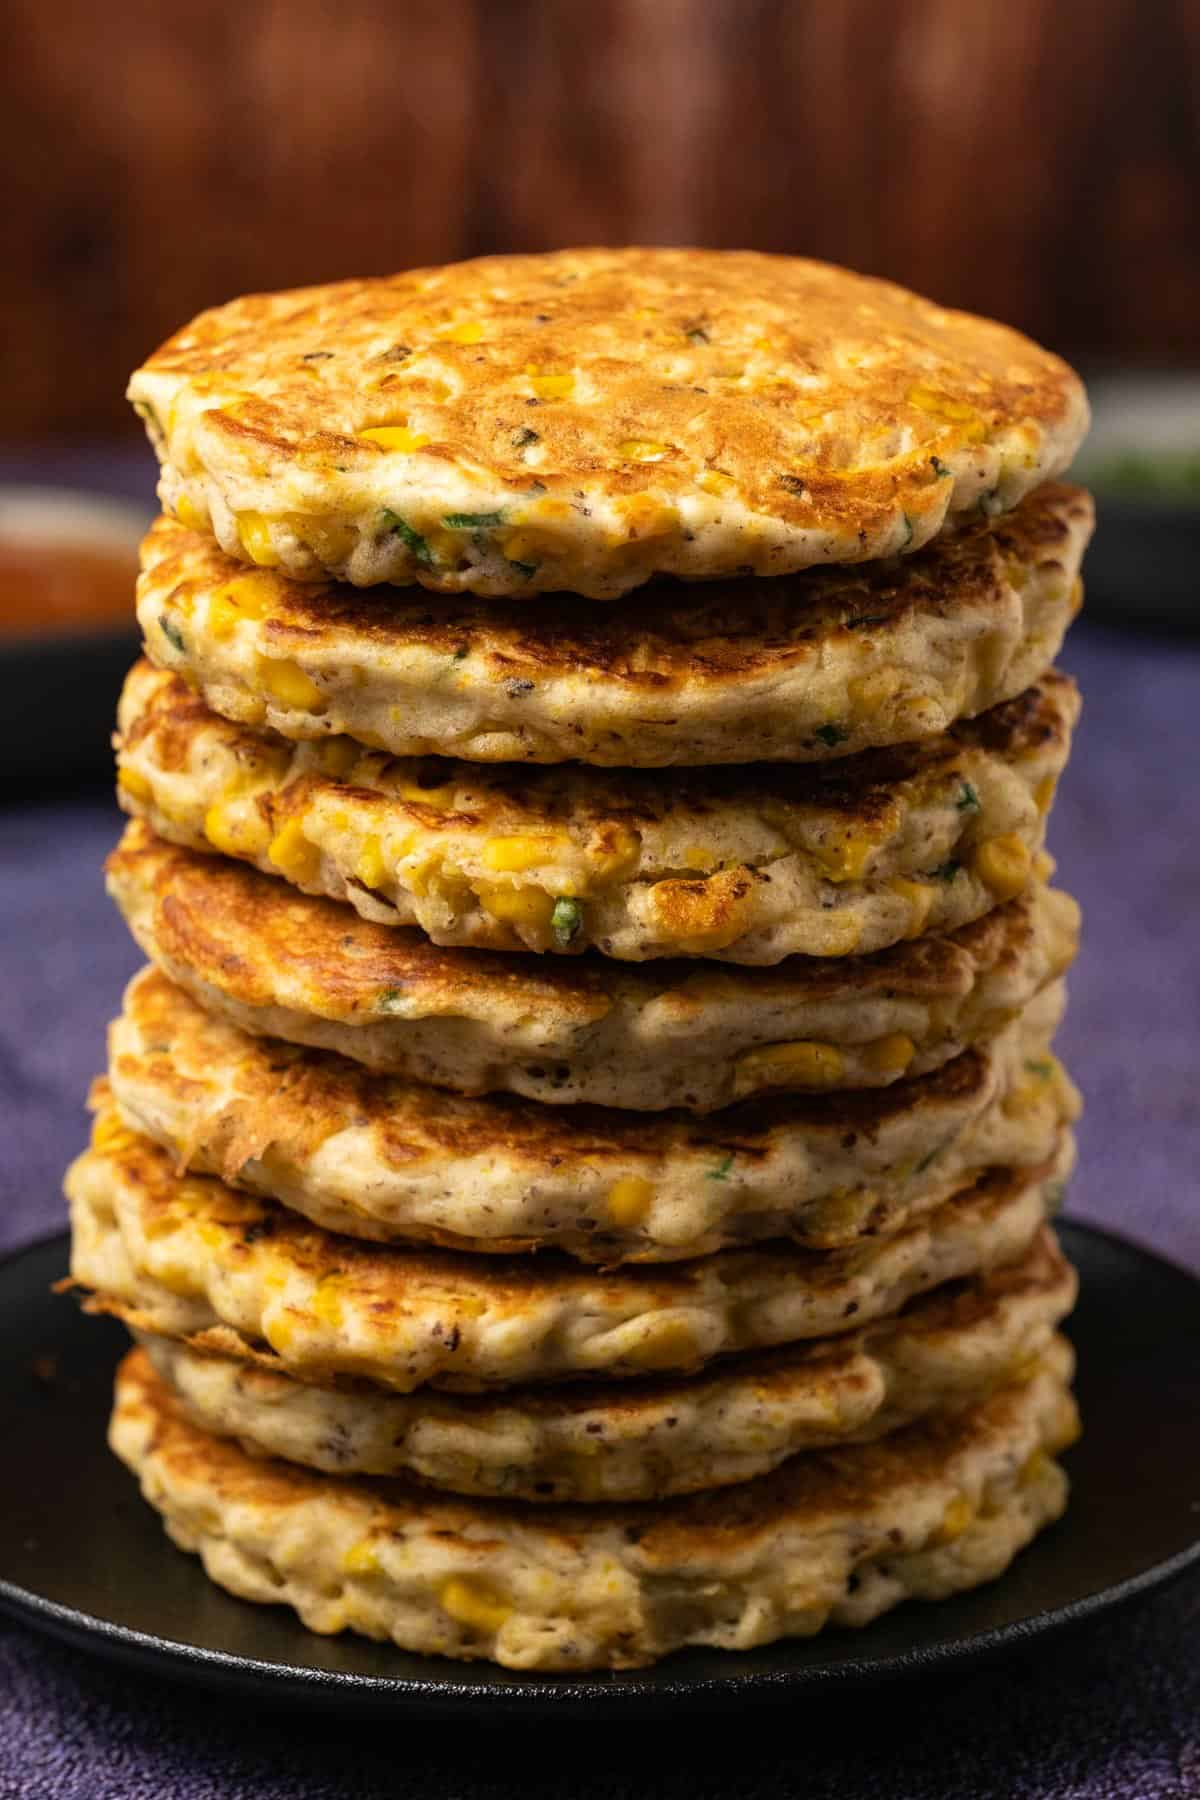 Stack of corn fritters on a black plate.